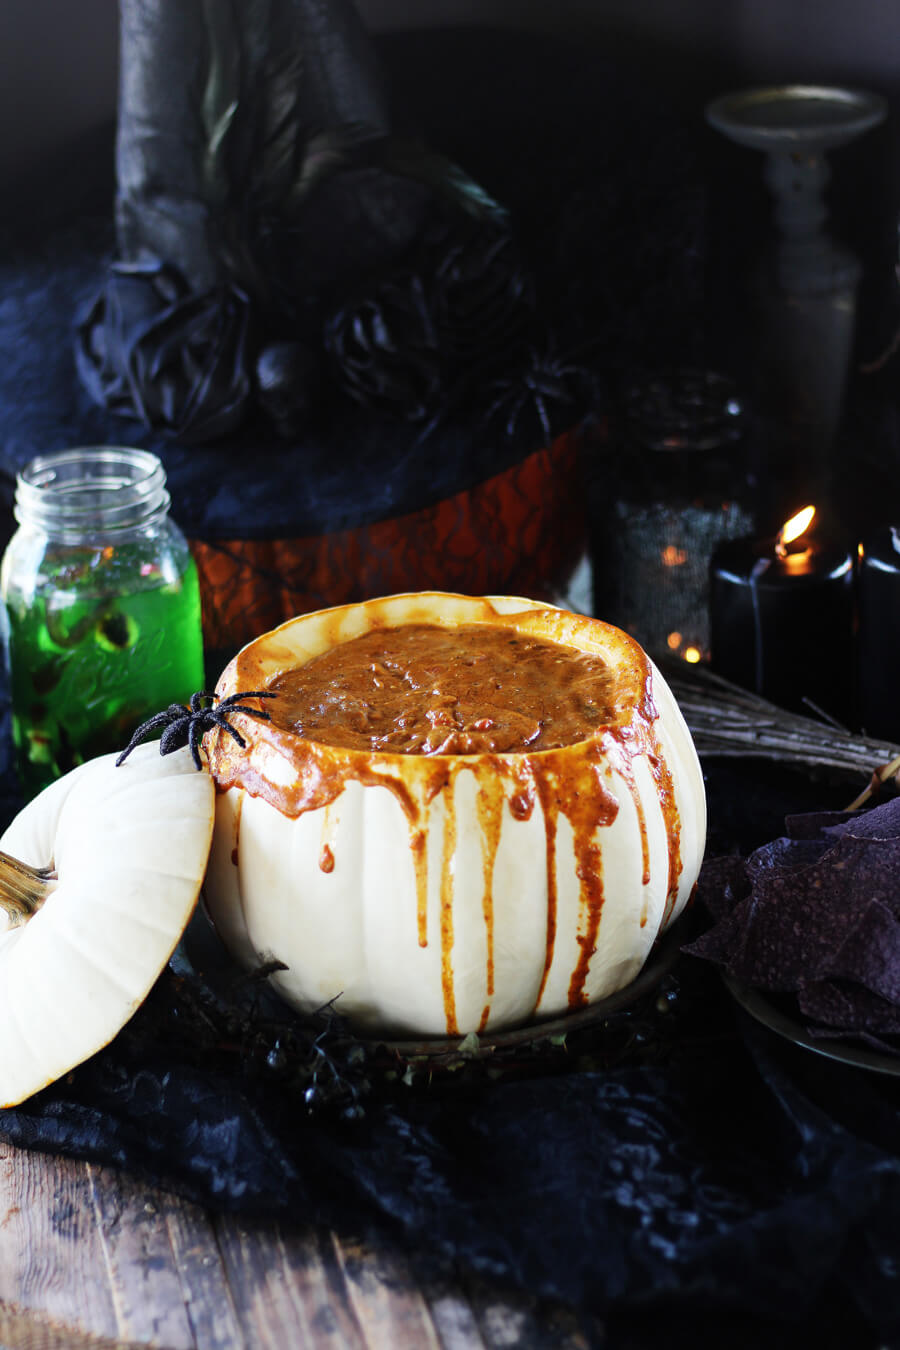 Halloween Chili Cheese RO*TEL Dip | Buy This Cook That - Halloween Chili Cheese RO*TEL Dip is chip after chip-ful of spicy-cheesy goodness that I cannot resist.